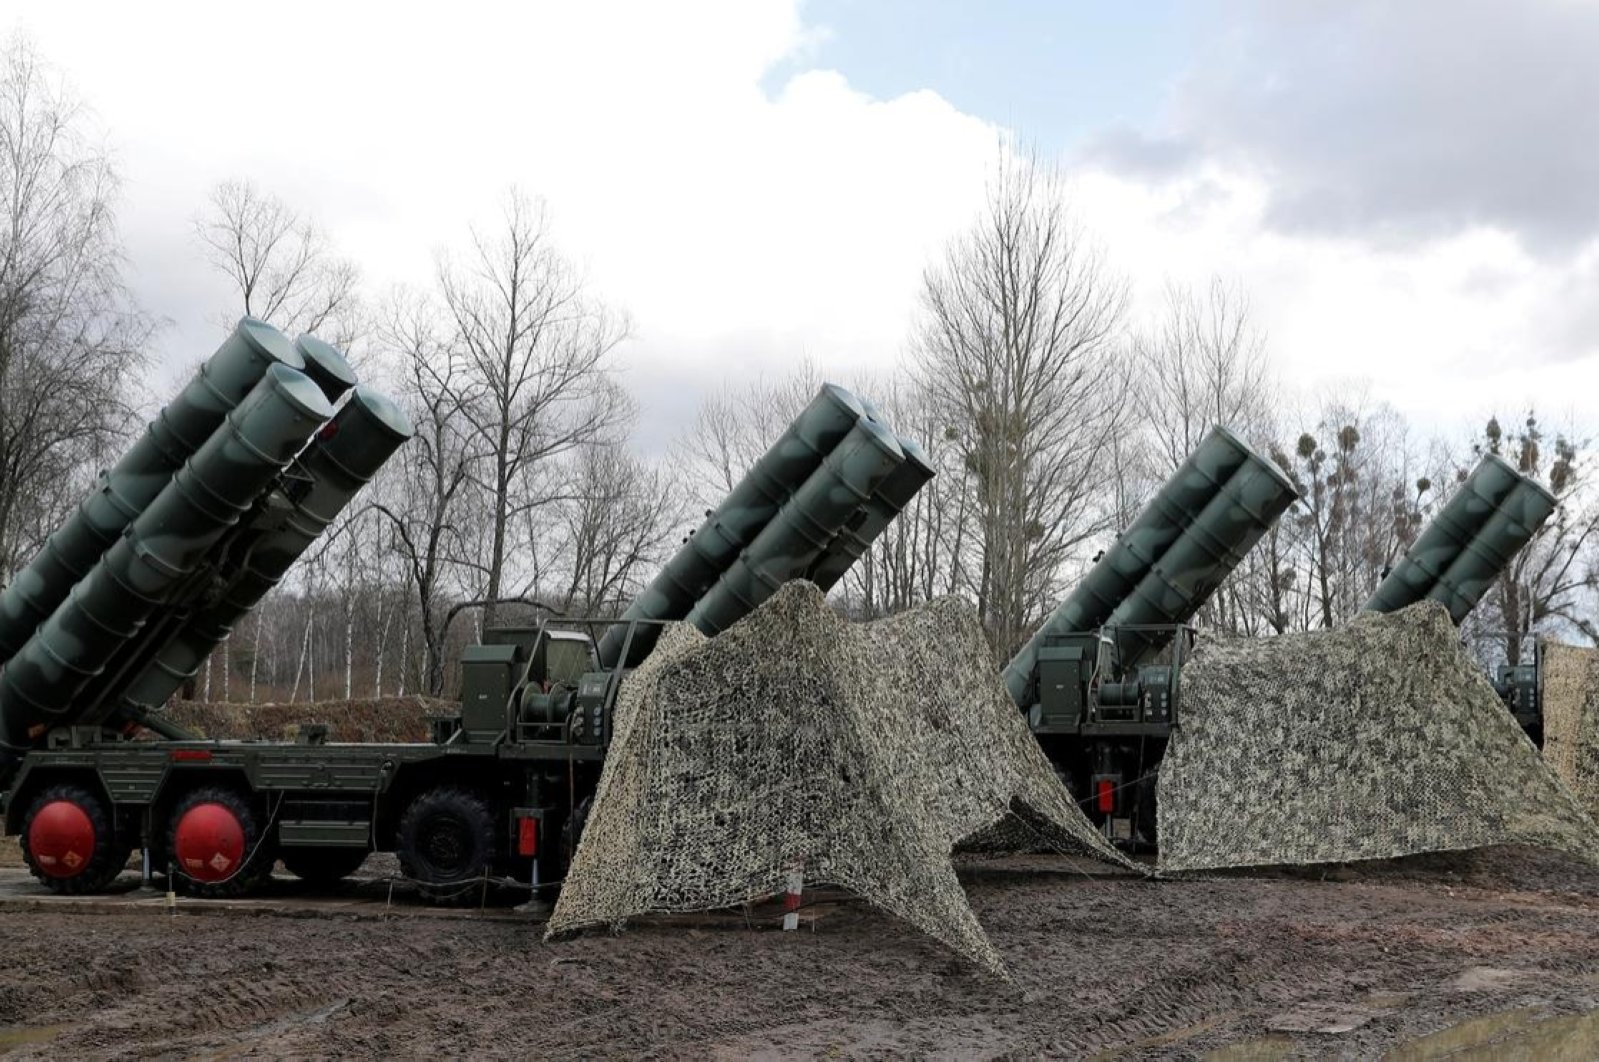 """A new S-400 """"Triumph"""" surface-to-air missile system after its deployment at a military base outside the town of Gvardeysk near Kaliningrad, Russia, March 11, 2019. (Reuters Photo)"""